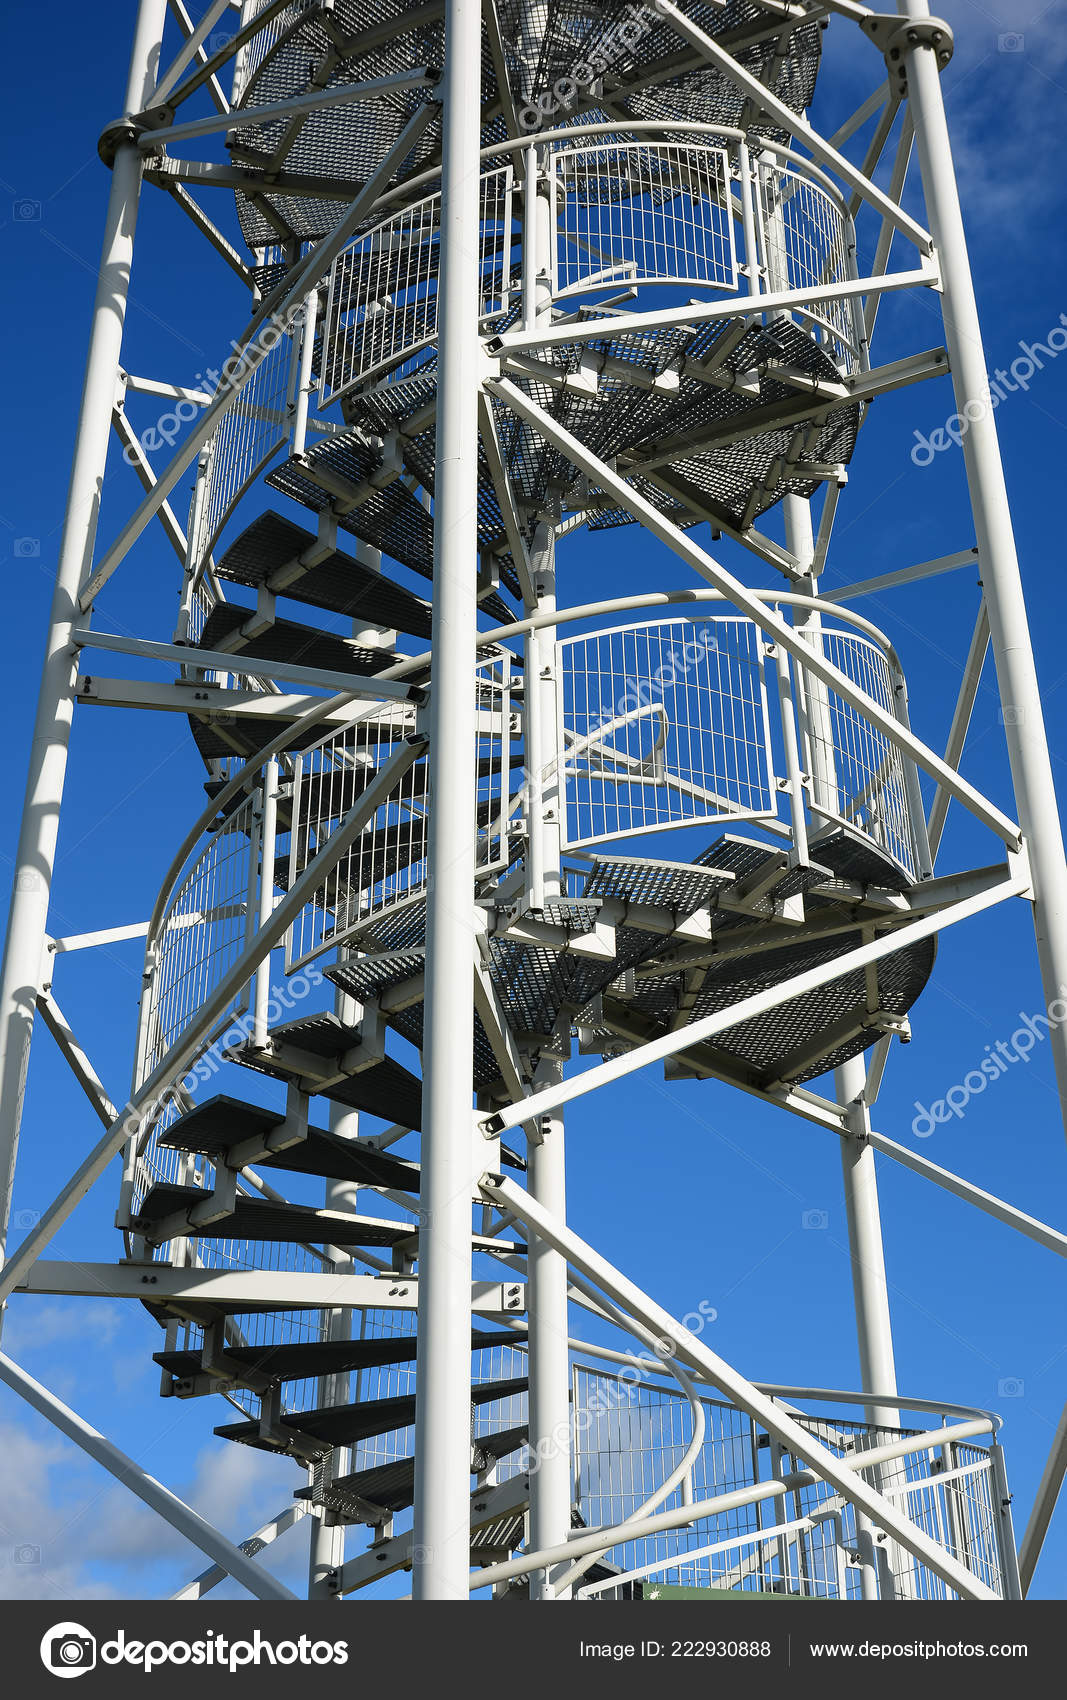 Spiral Staircase Lookout Tower Construction Metal Steps Observation